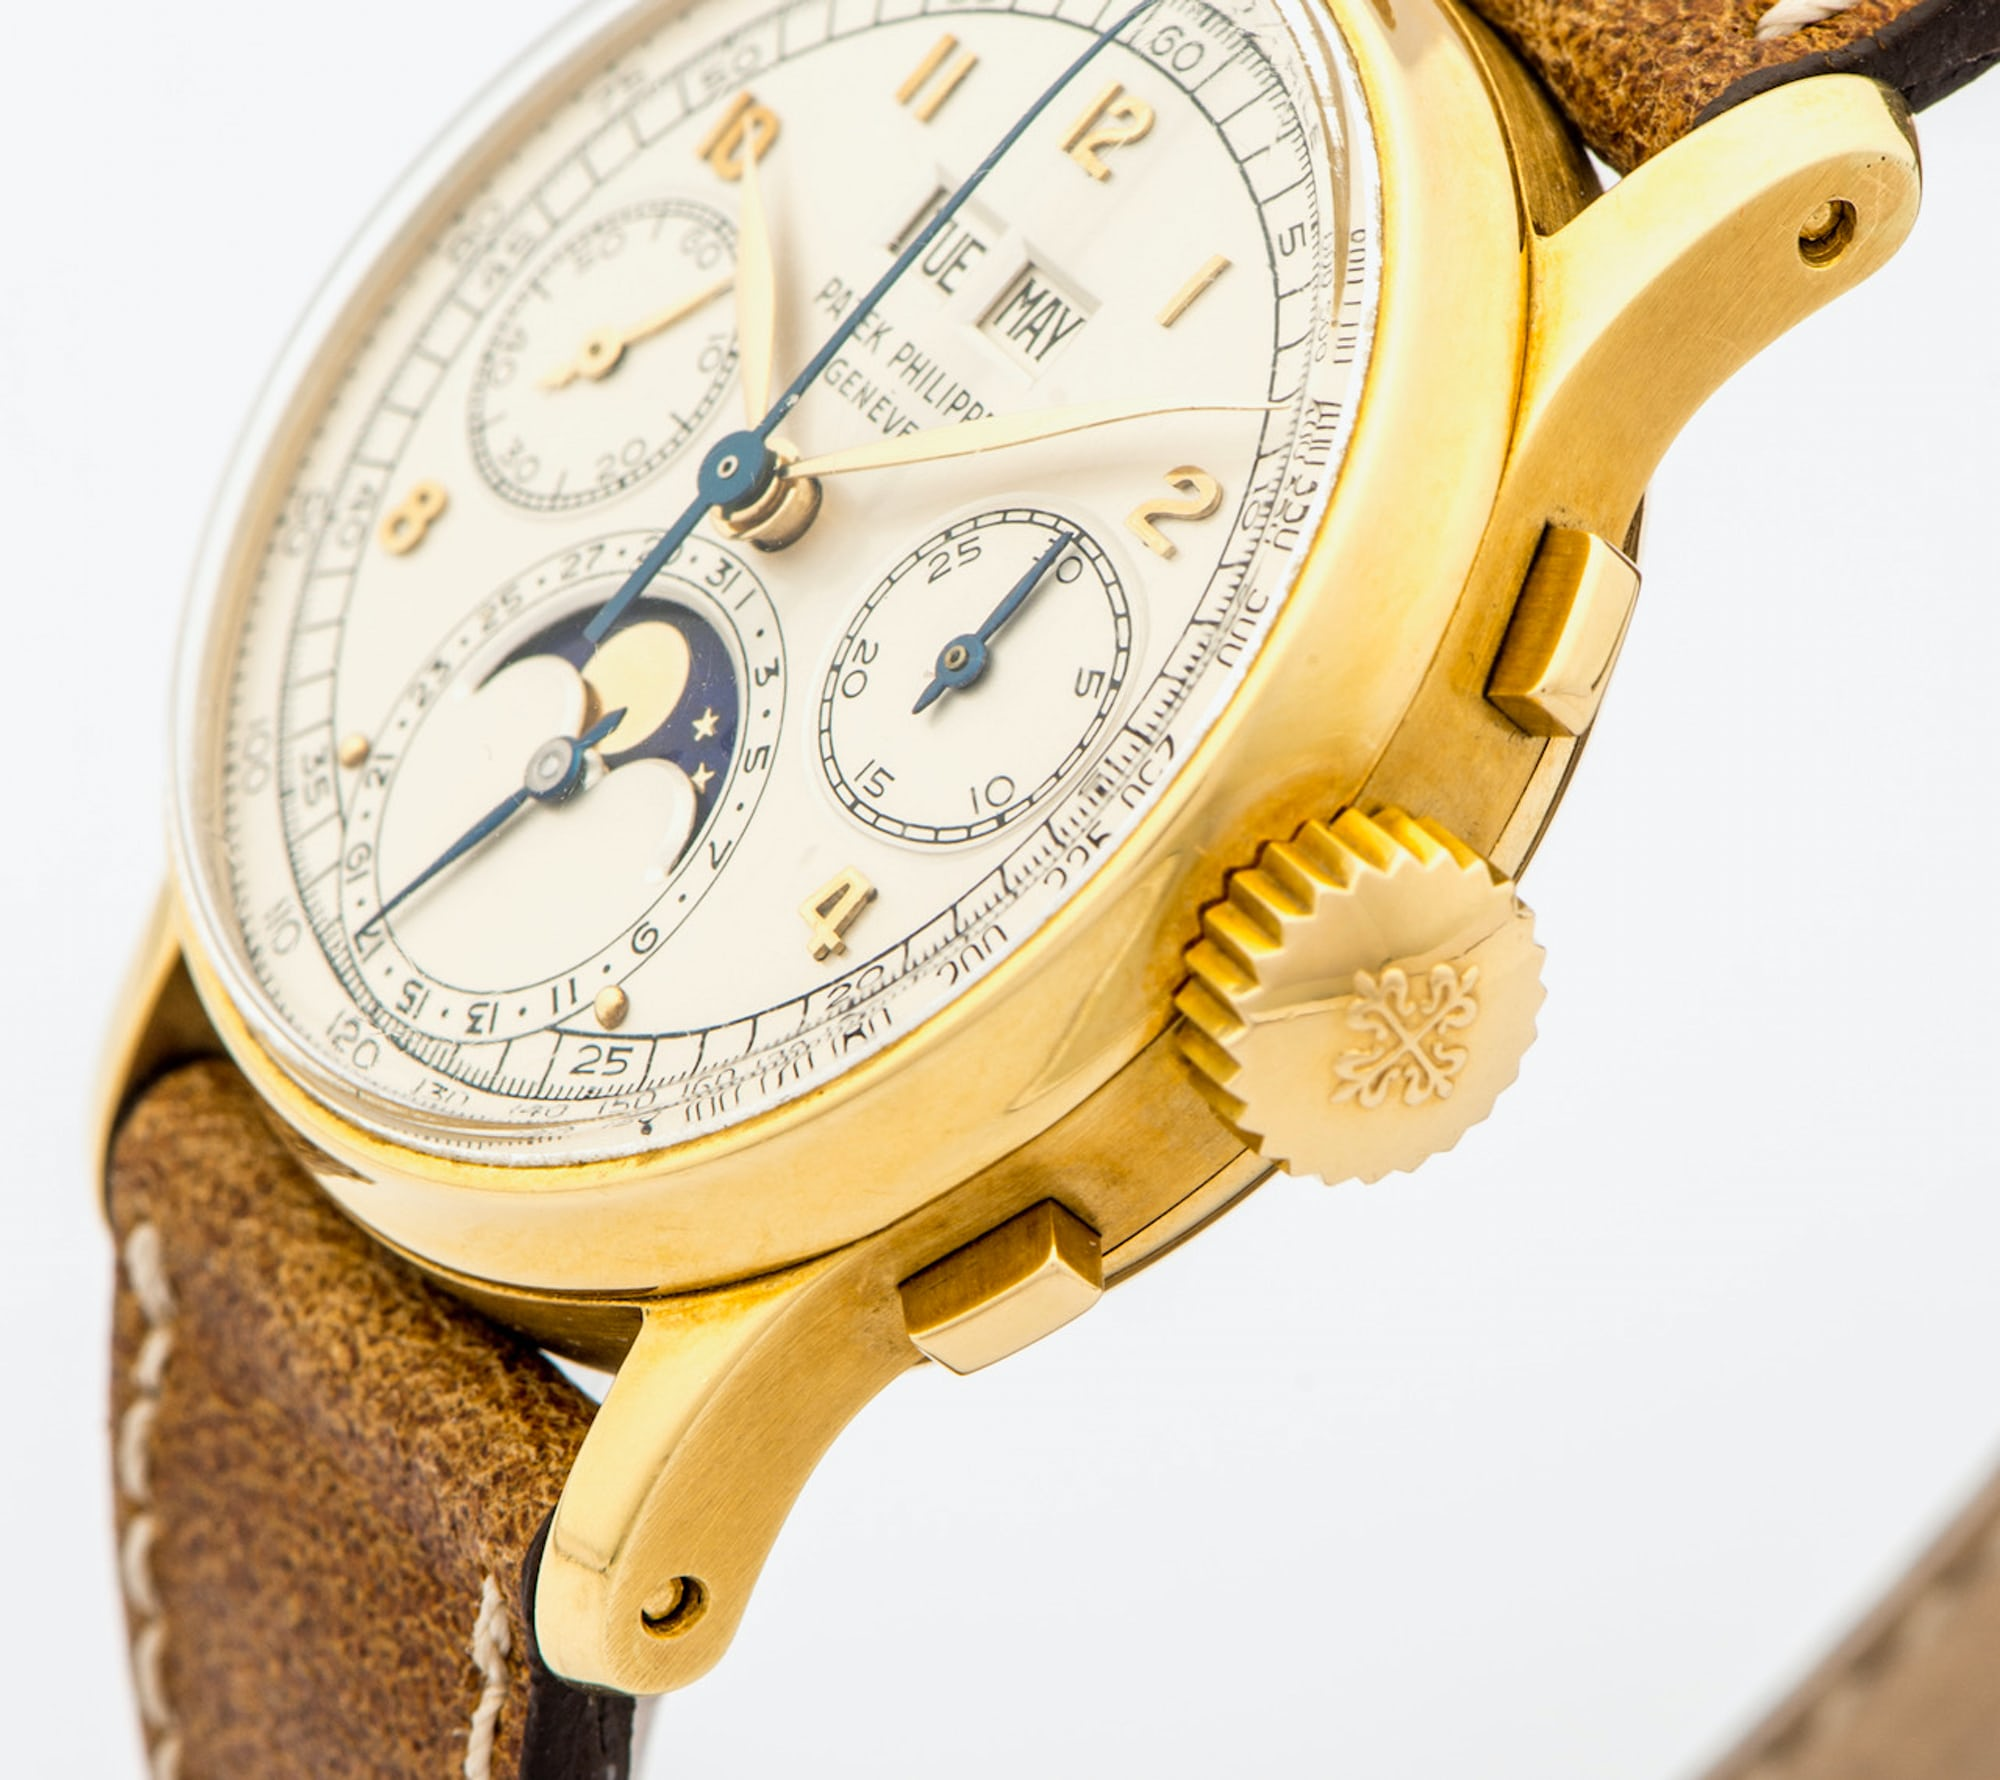 Watch Collector PSA: A Very Rare Patek Philippe 1518 In Yellow Gold Has Been Stolen (Please Share) Watch Collector PSA: A Very Rare Patek Philippe 1518 In Yellow Gold Has Been Stolen (Please Share) IMG 4771